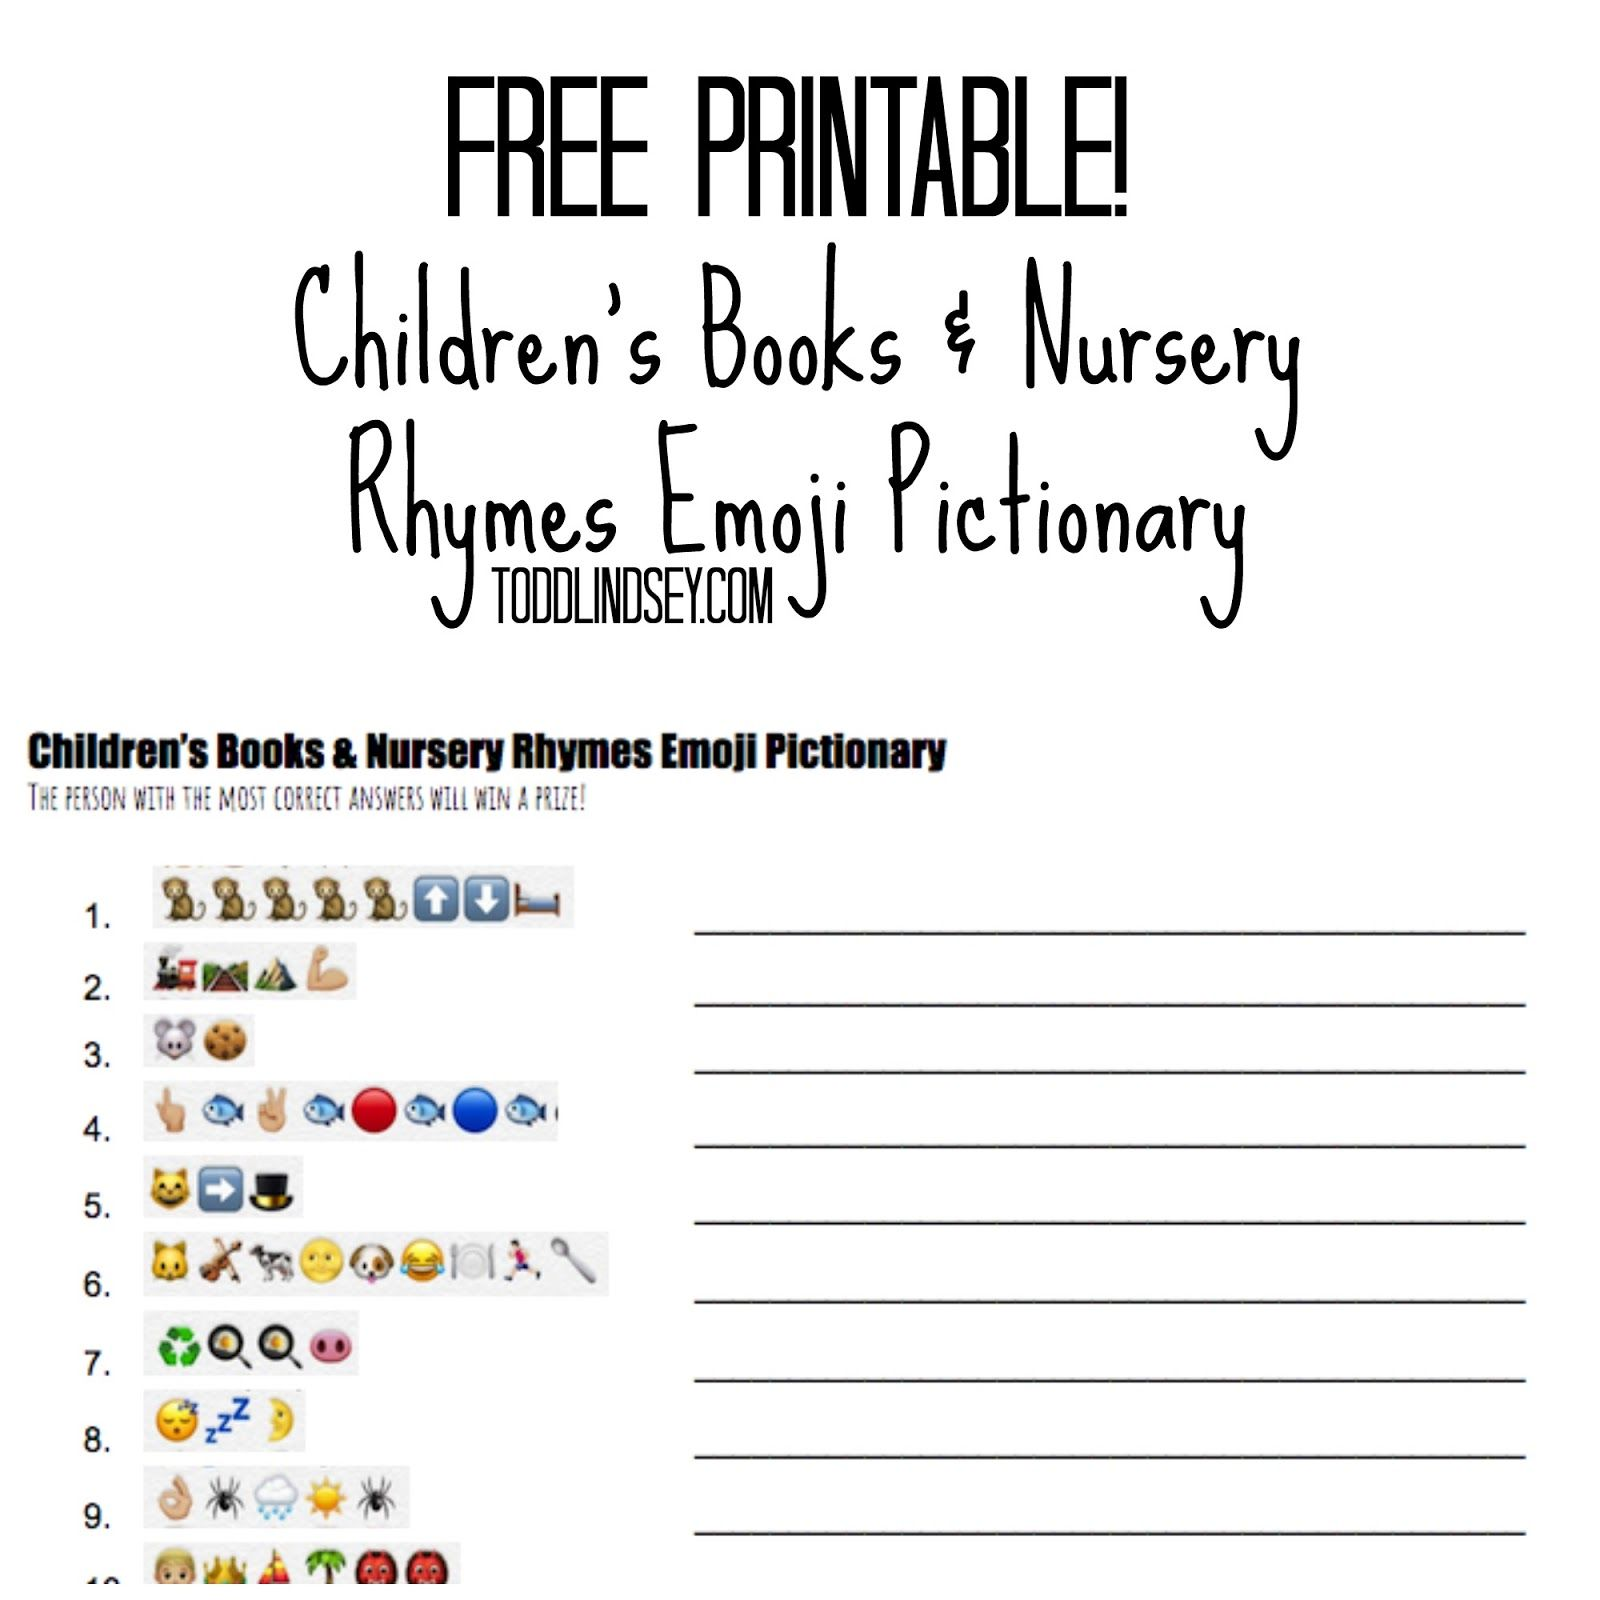 photograph relating to Printable Emoji Games named Cost-free Printable! Childrens Textbooks Nursery Rhymes Emoji